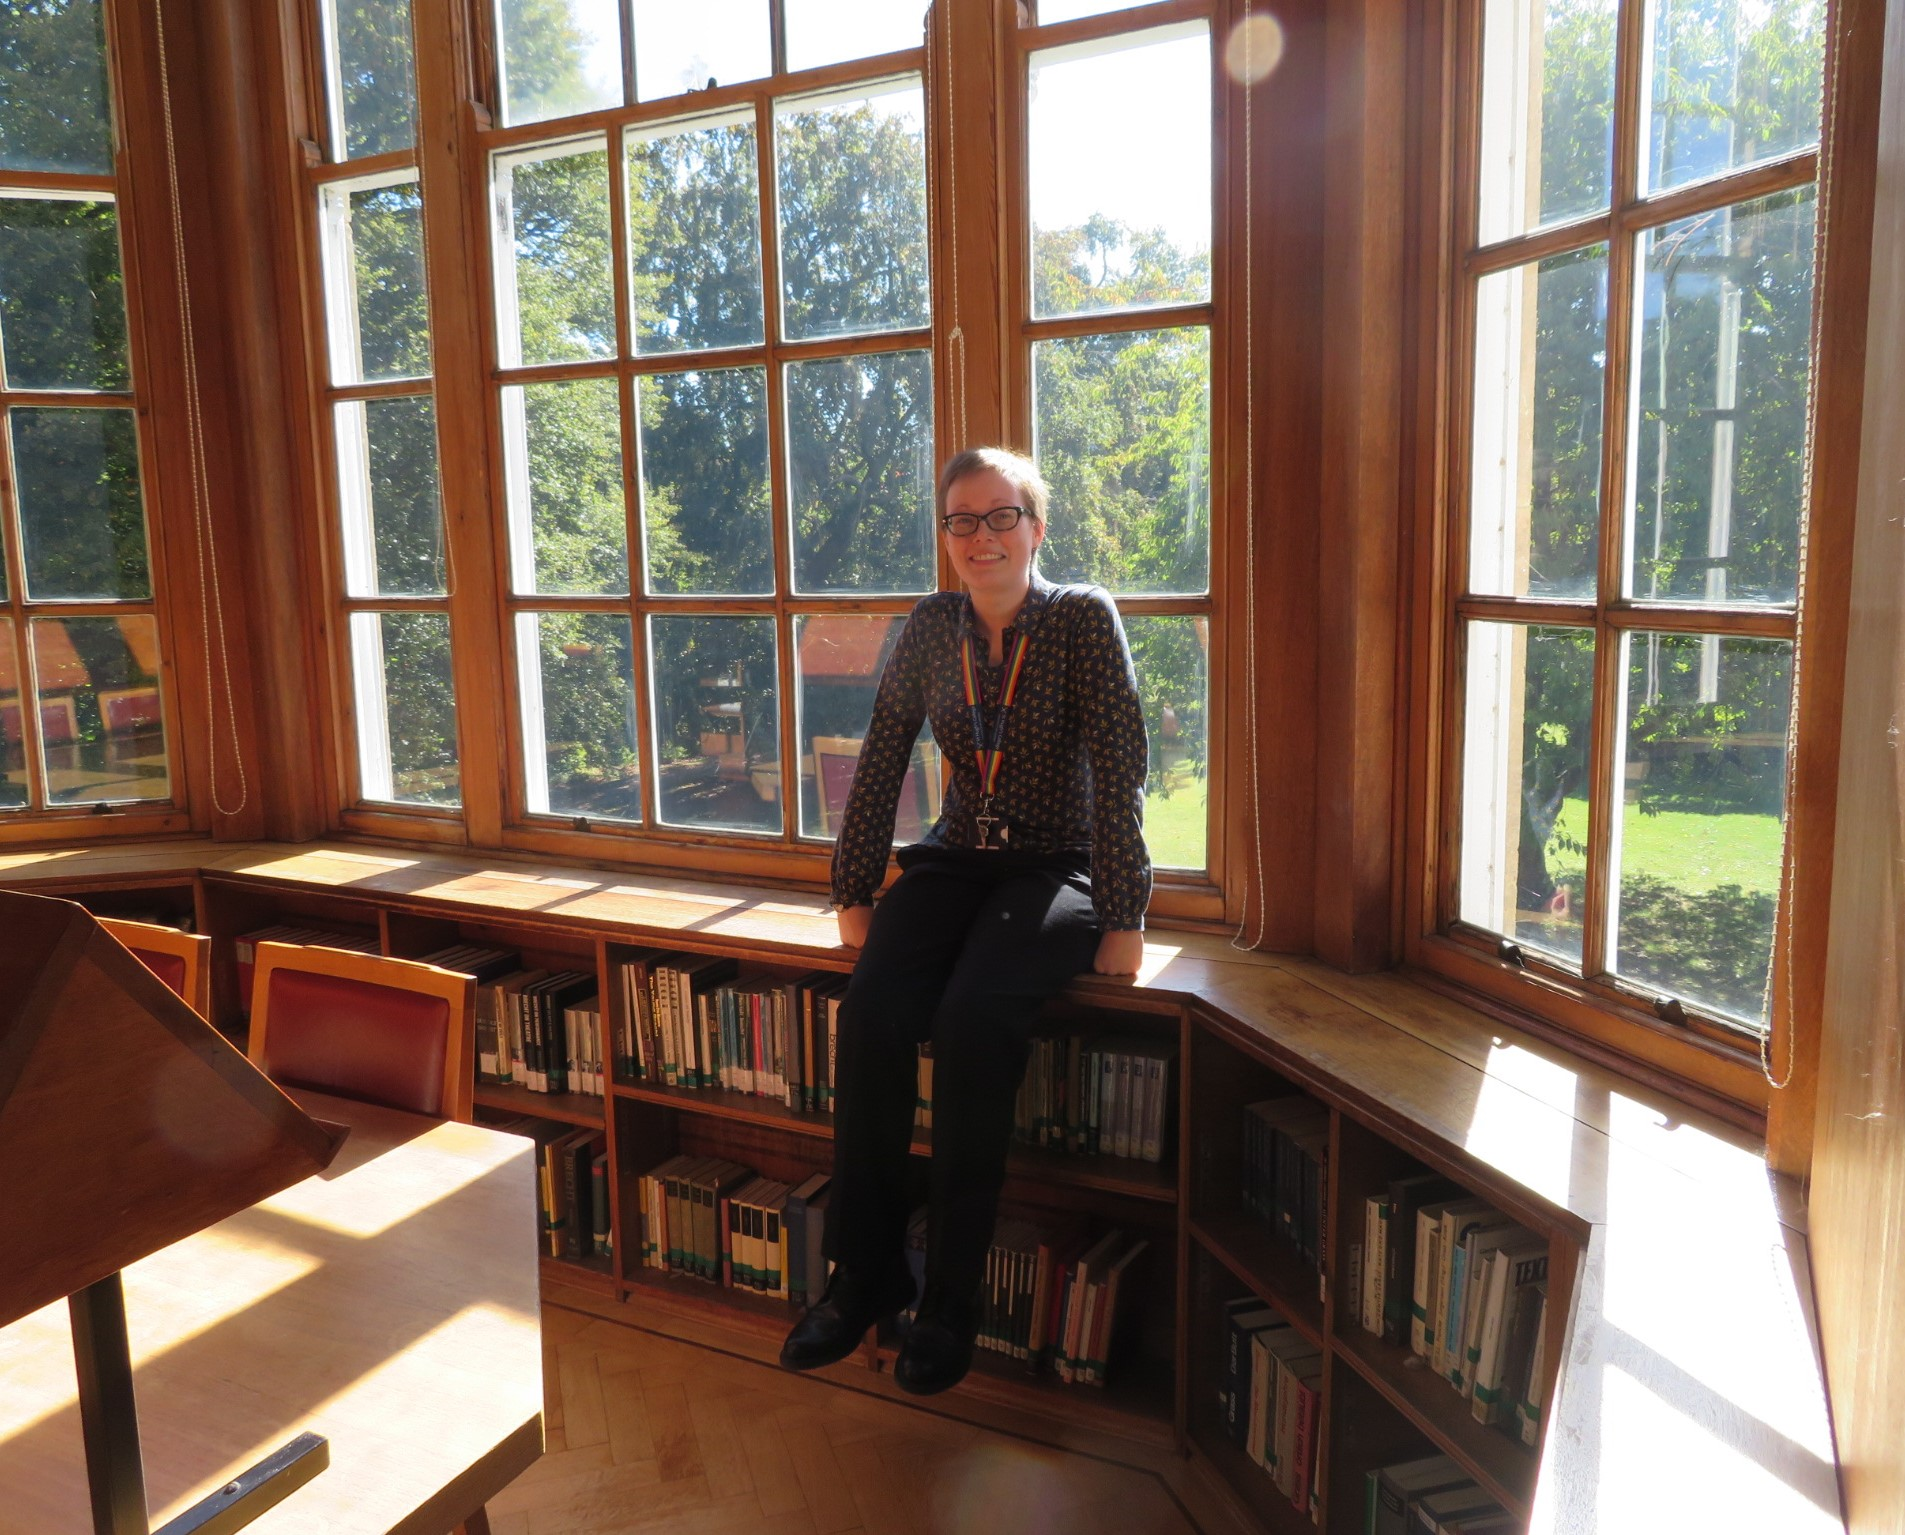 Me sitting on a window ledge in the Upper Reading Room. Large windows behind me. Books on shelves underneath the window ledge.